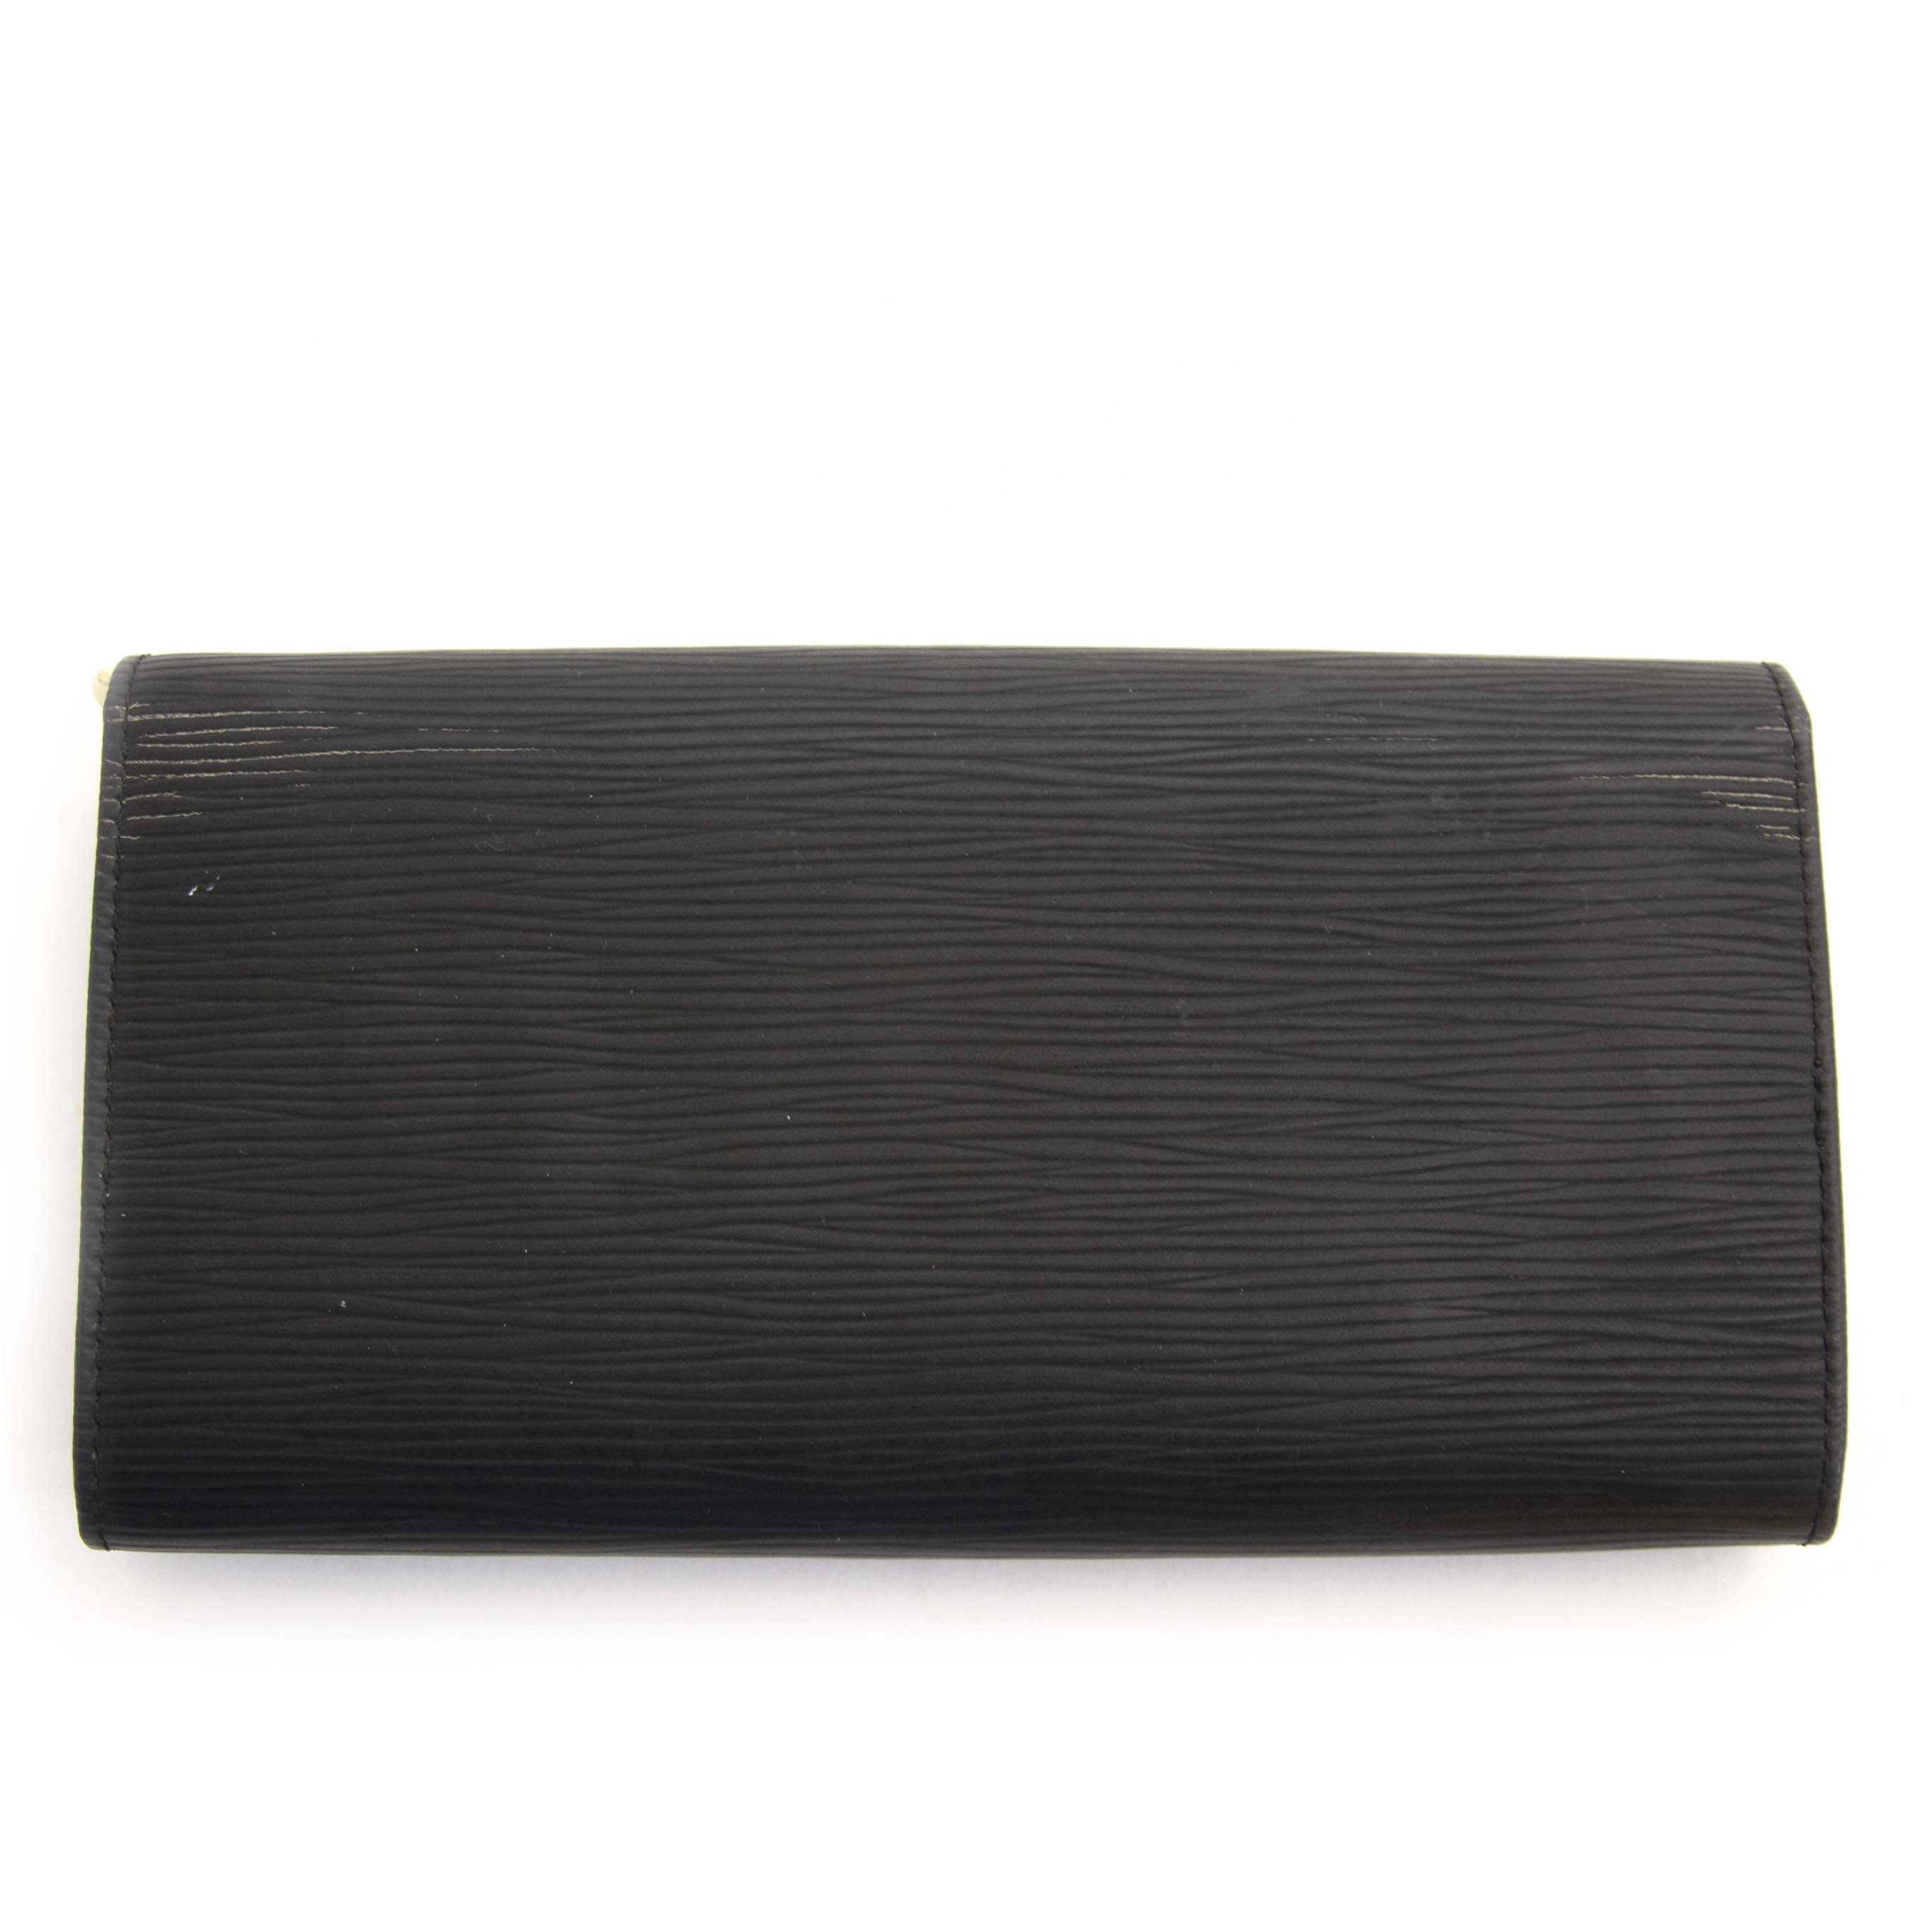 Authentique seconde main Louis Vuitton Epi Sarah Wallet Black achète en ligne webshop LabelLOV